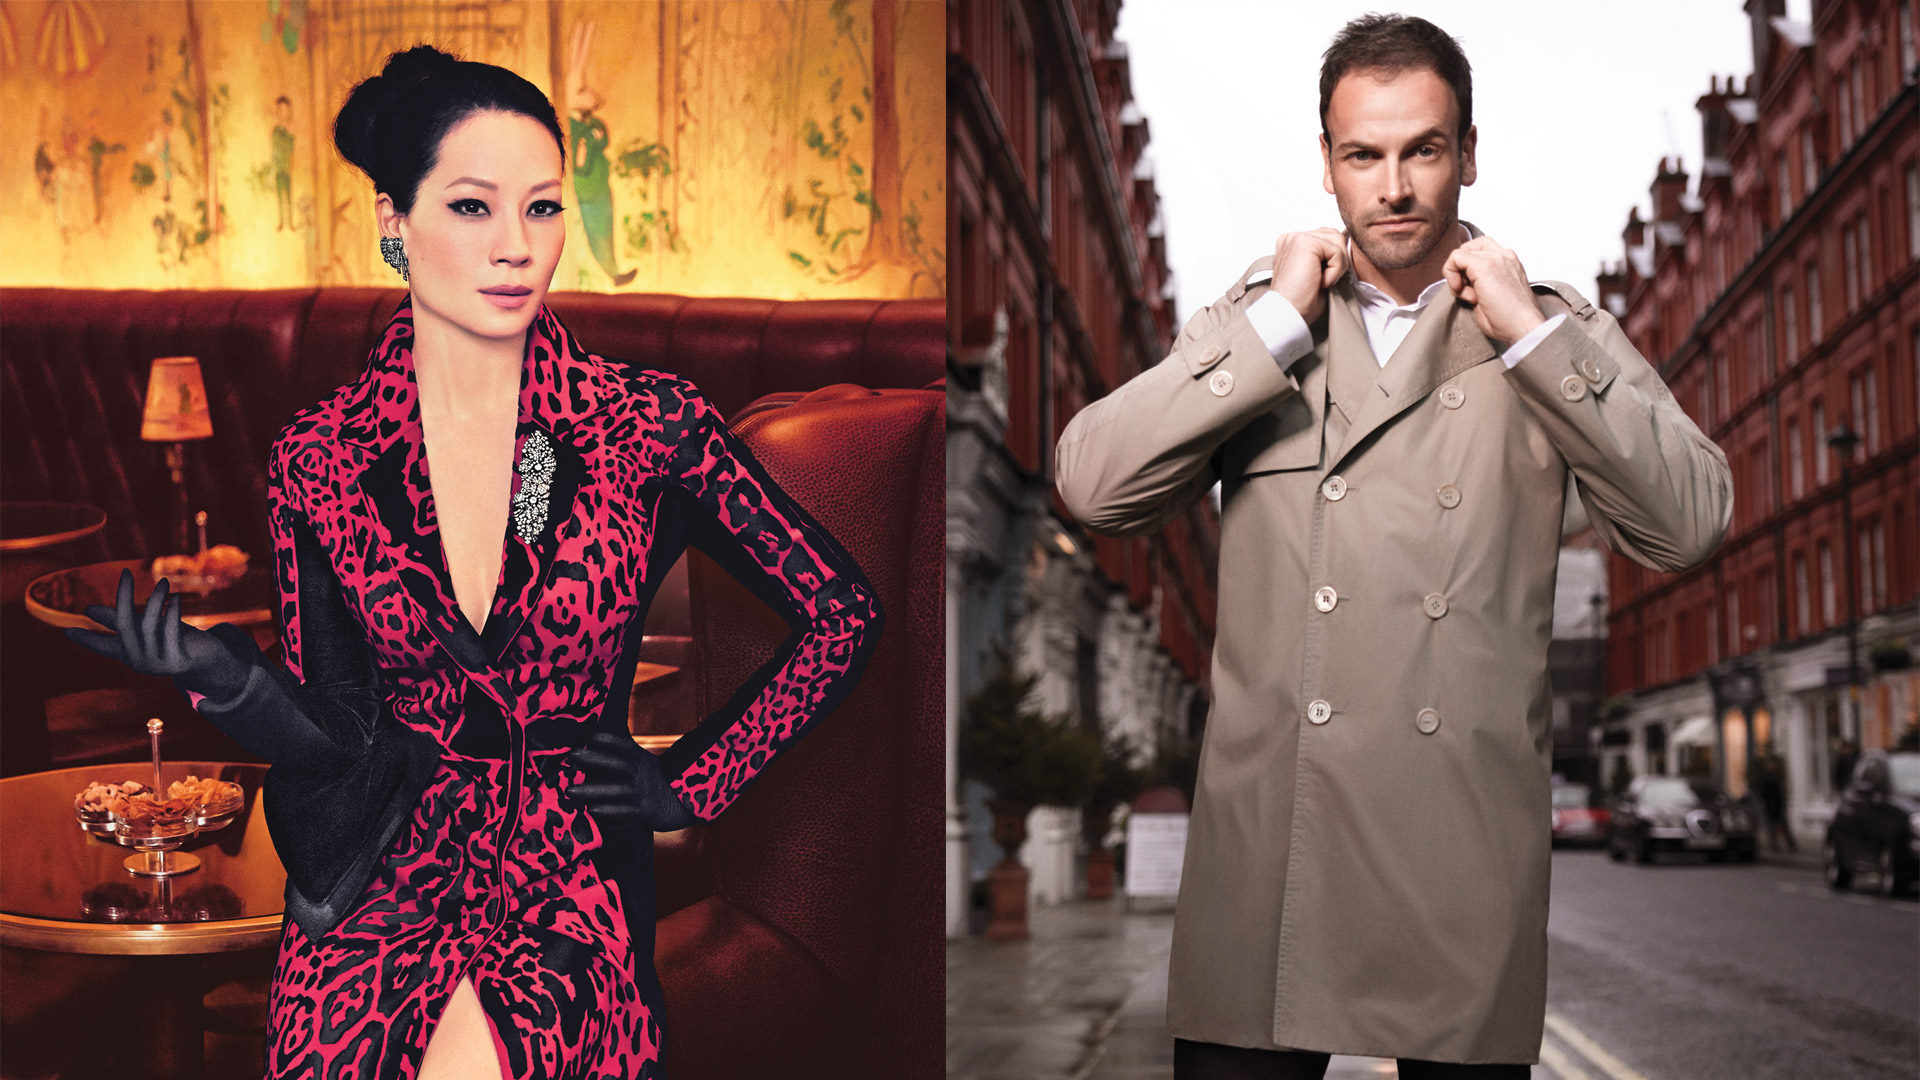 Elementary: Lucy Liu and Jonny Lee Miller